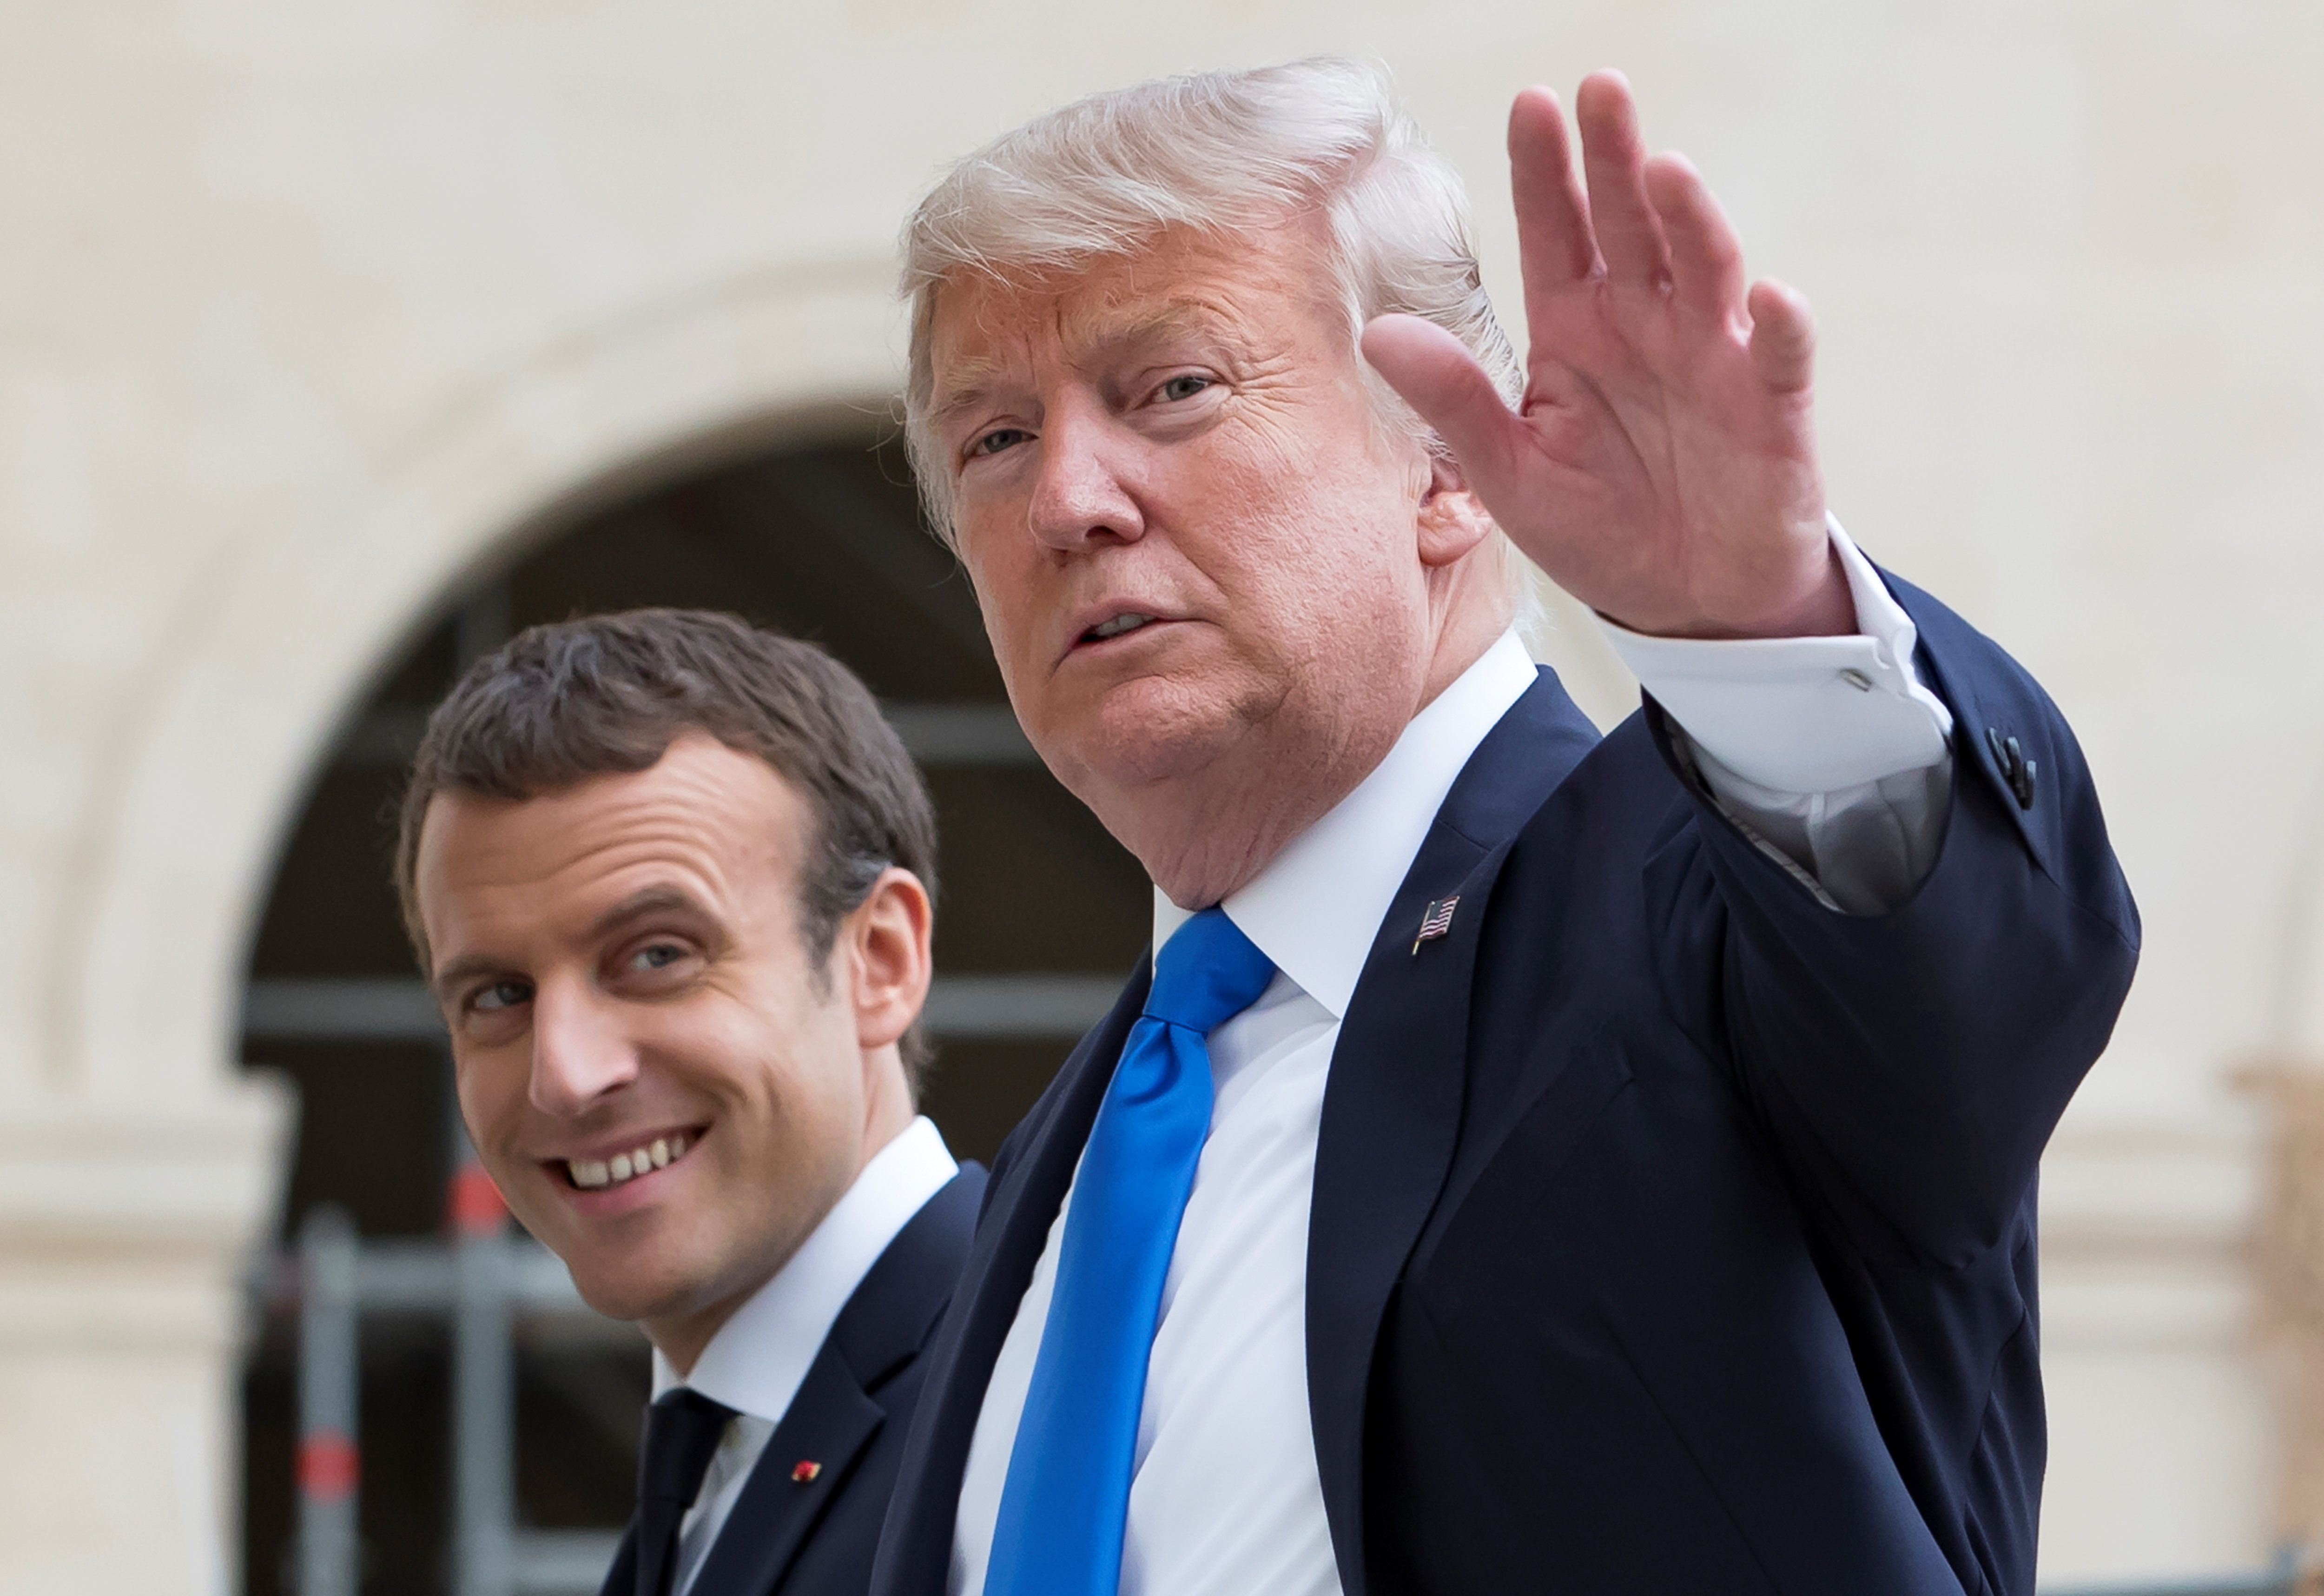 French President Emmanuel Macron (L) and U.S. President Donald Trump (R) speak as they leave Les Invalides museum in Paris, France, July 13, 2017.  REUTERS/Ian Langsdon/Pool